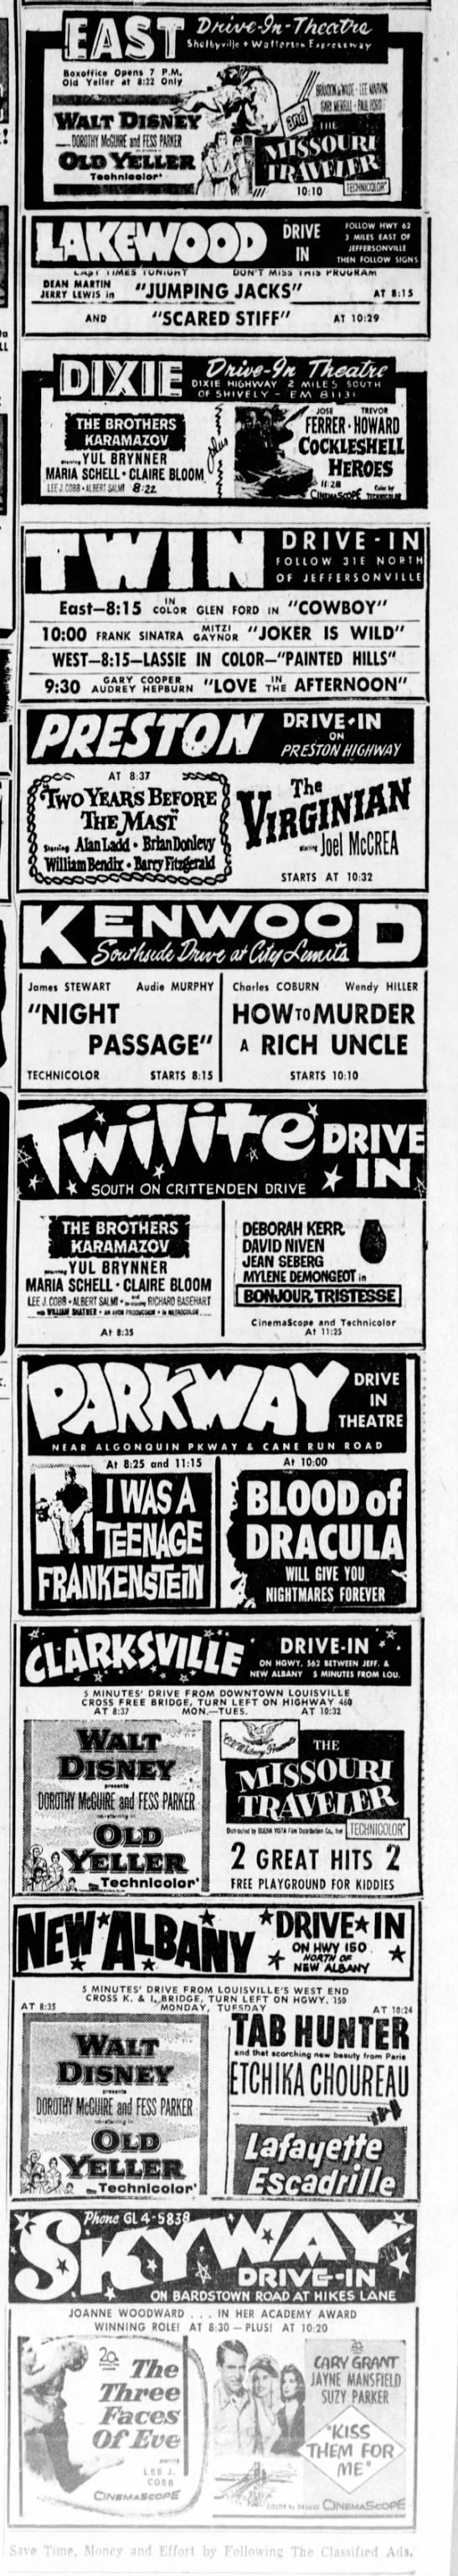 Drive In Movie Ads The Courier Journal Louisville Ky June 2 1958